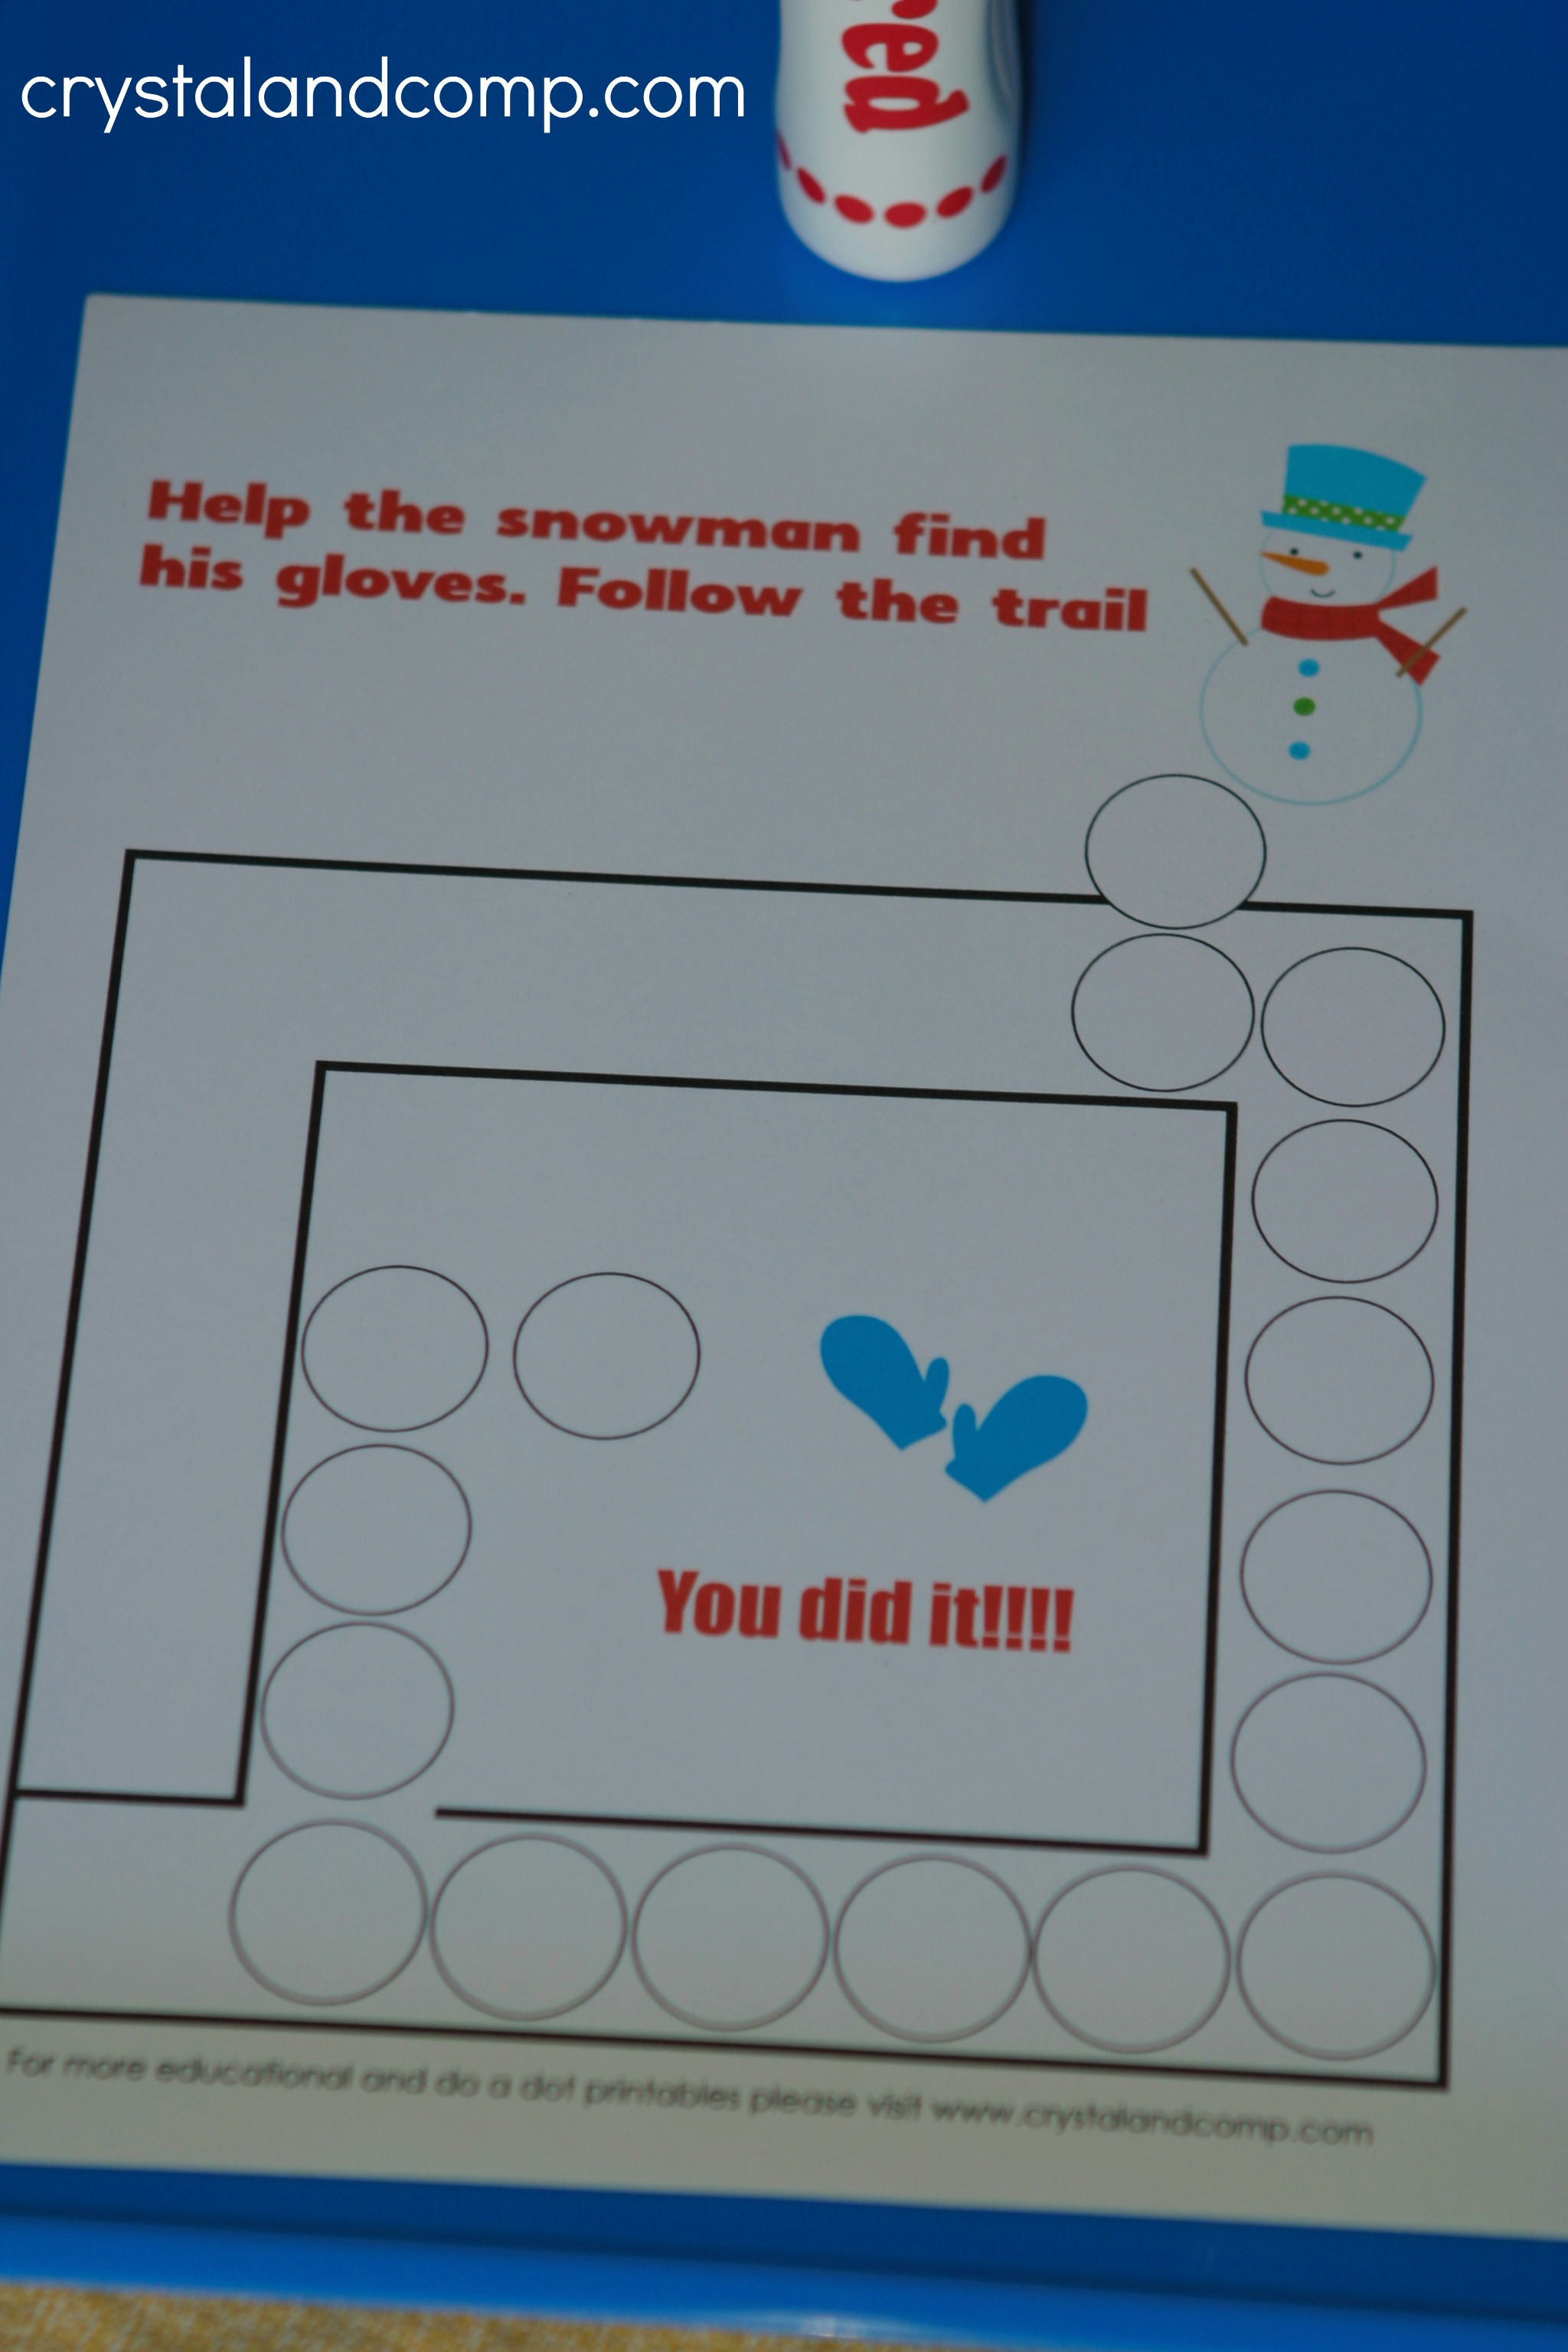 Snowman Do a Dot Printables for Preschoolers | CrystalandComp.com